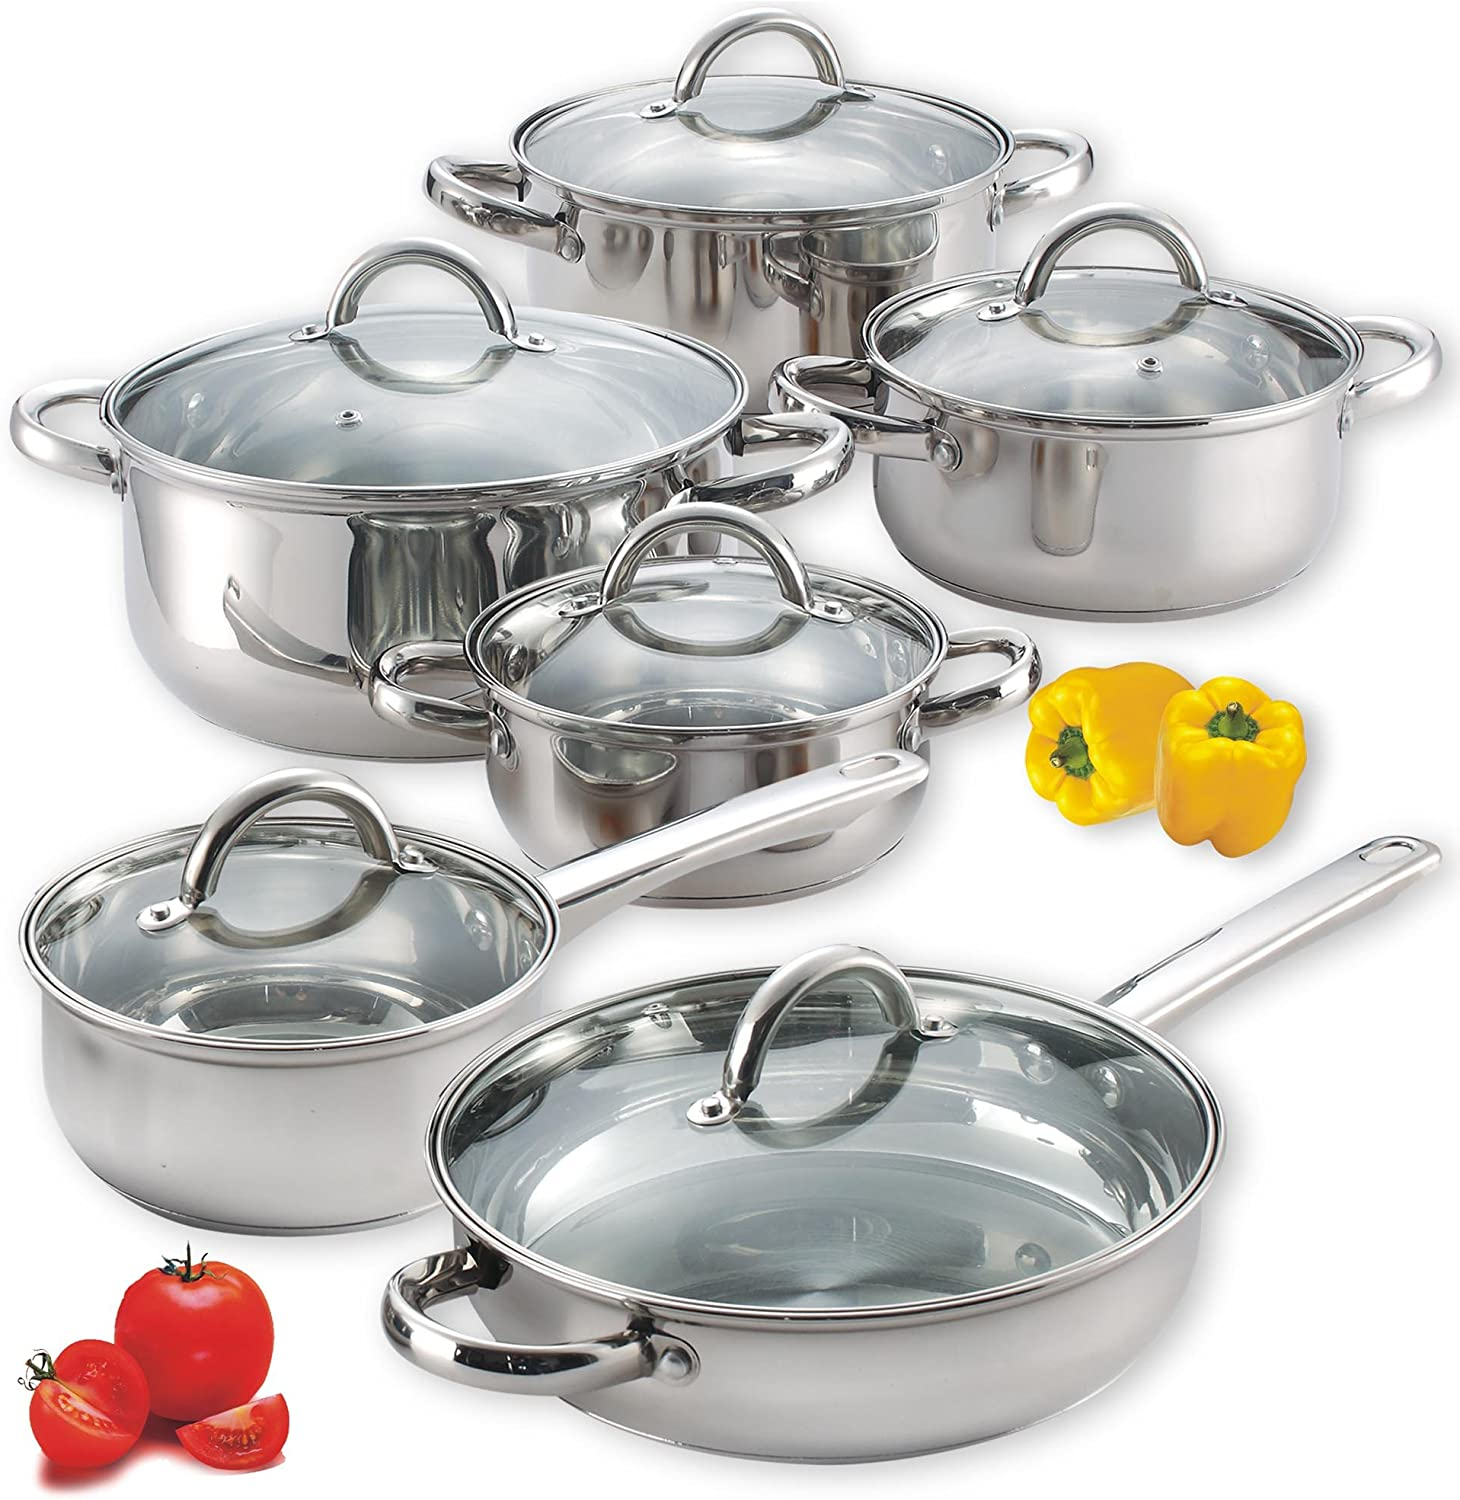 Cook N Home 12-Piece Cookware Set